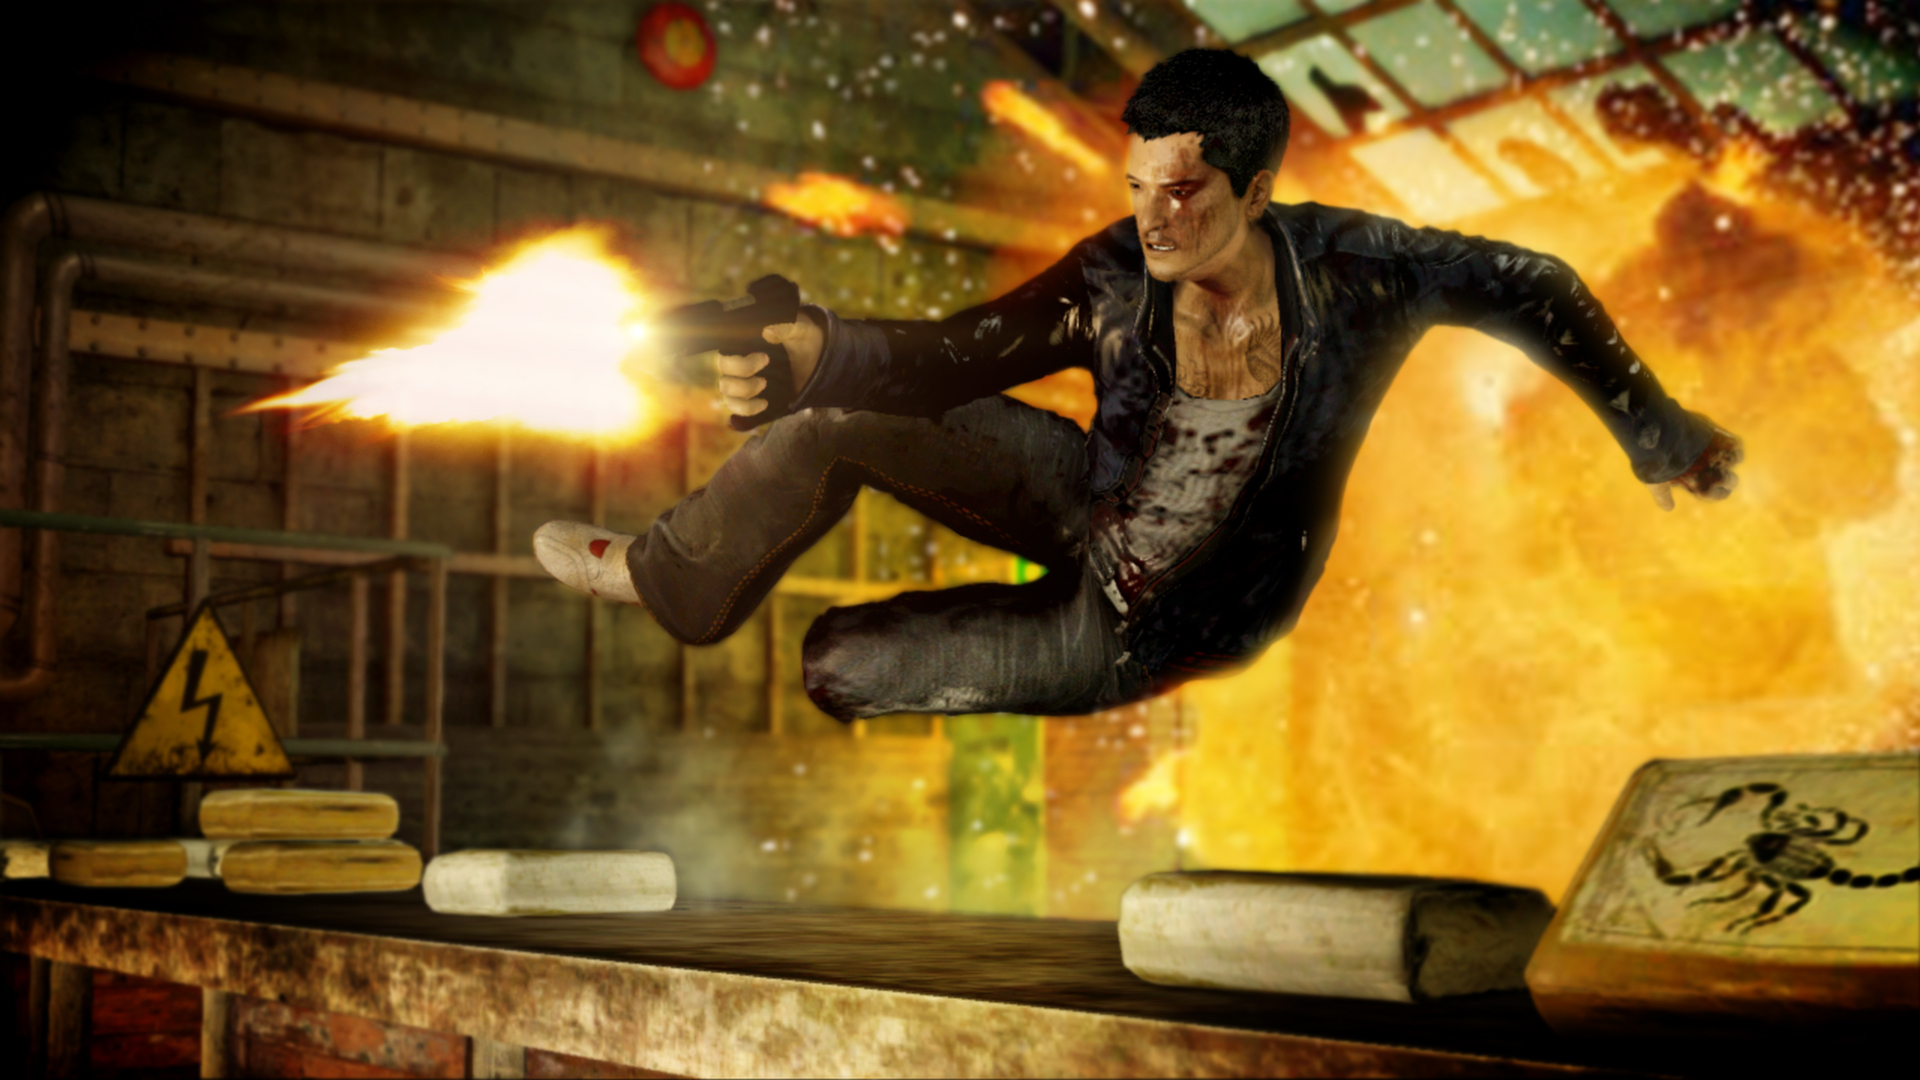 Find the best gaming PC for Sleeping Dogs